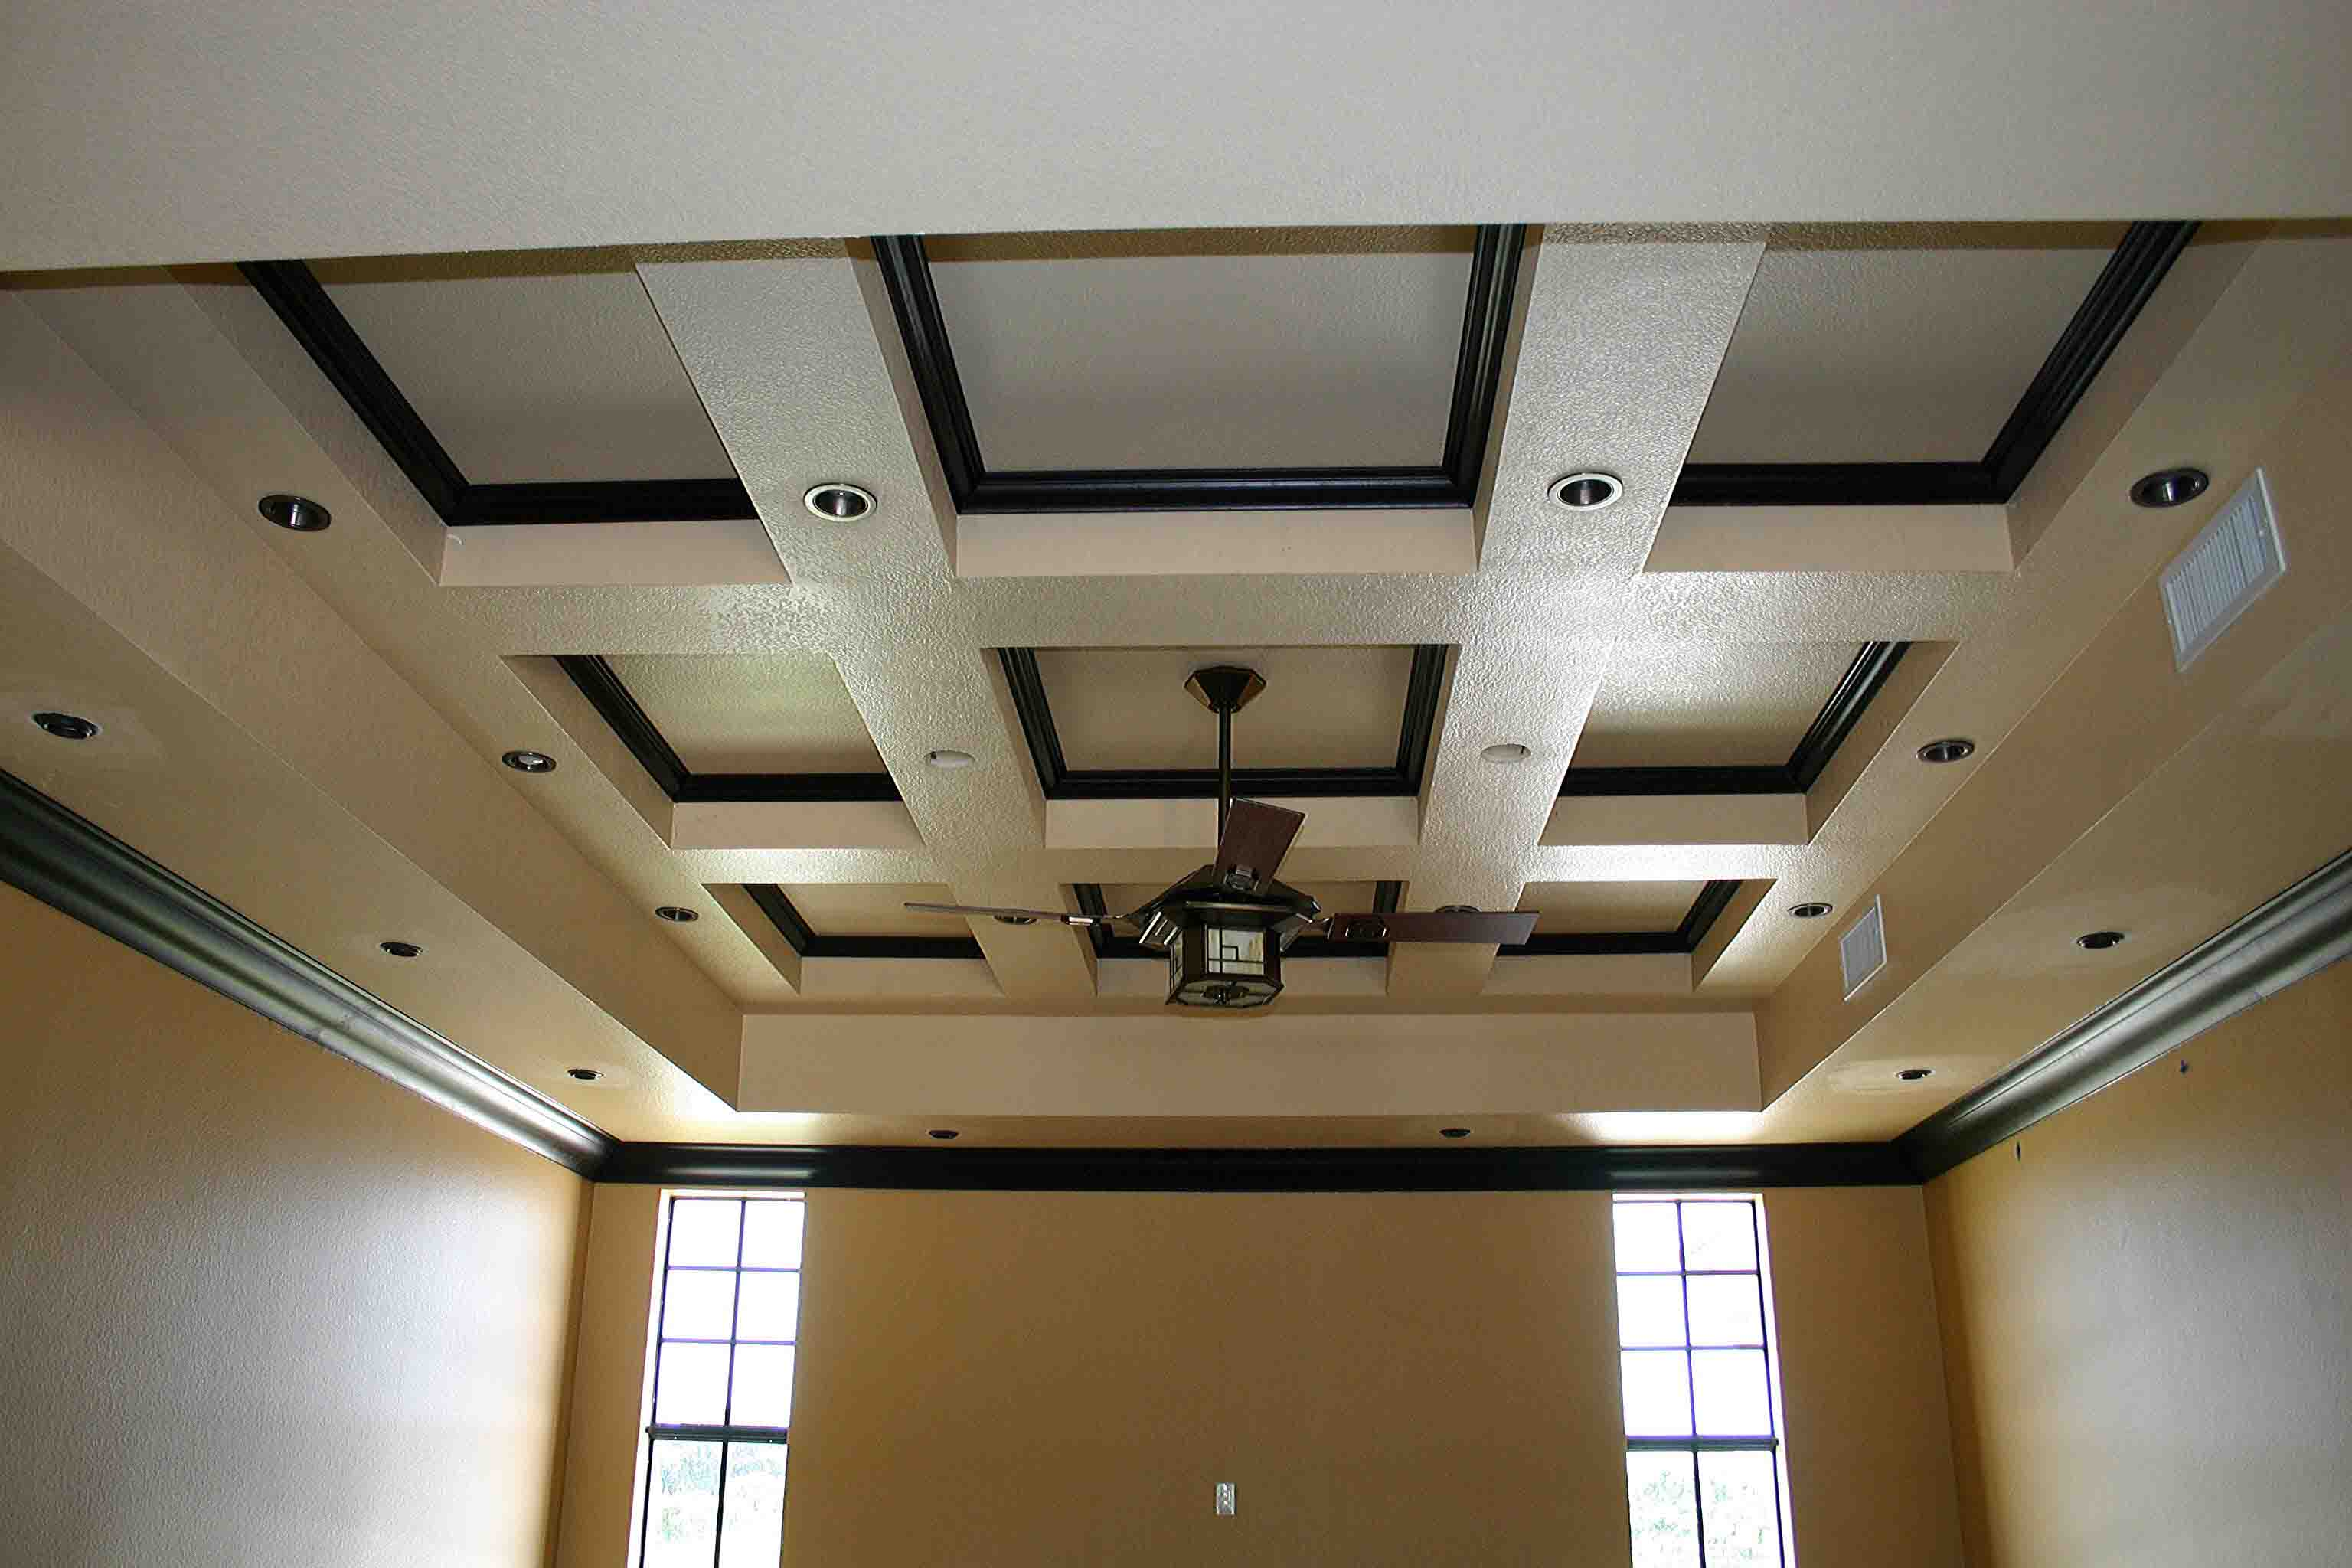 stunning Coffered Ceiling in white and black theme plus lights and chandelier matched with cream wall plus two single hung windows